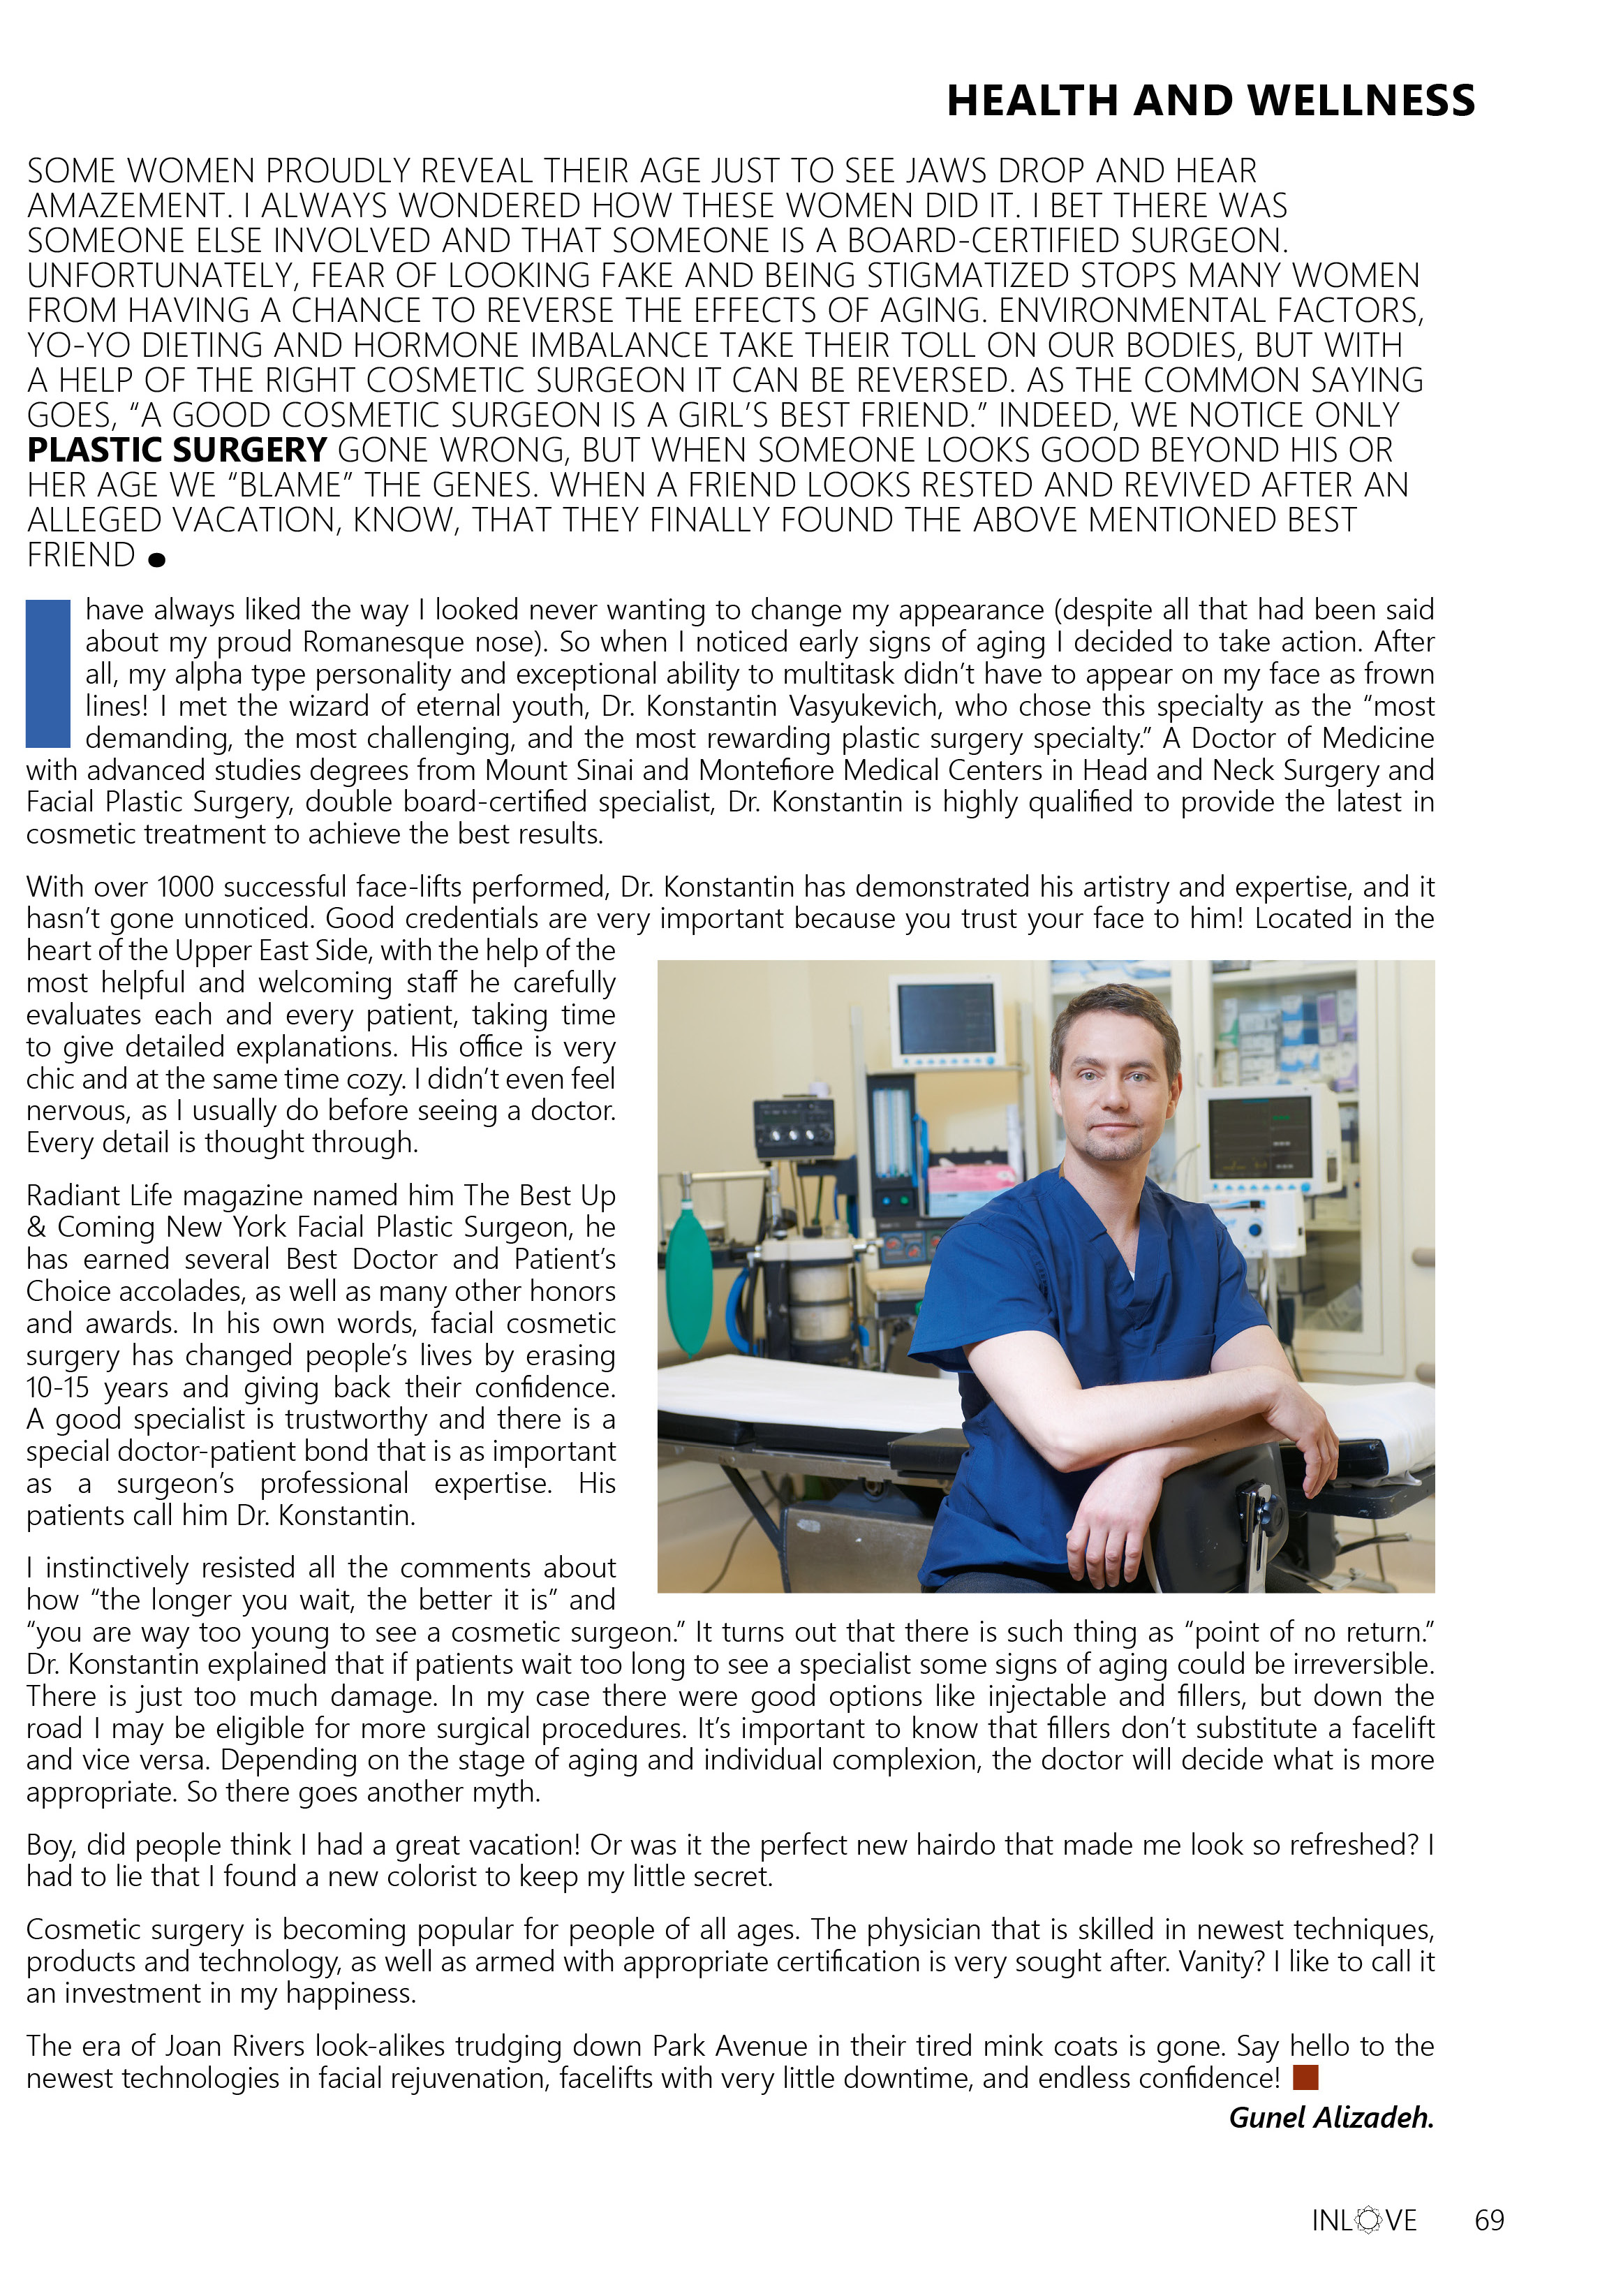 Dr. Konstantin featured in the In Love magazine